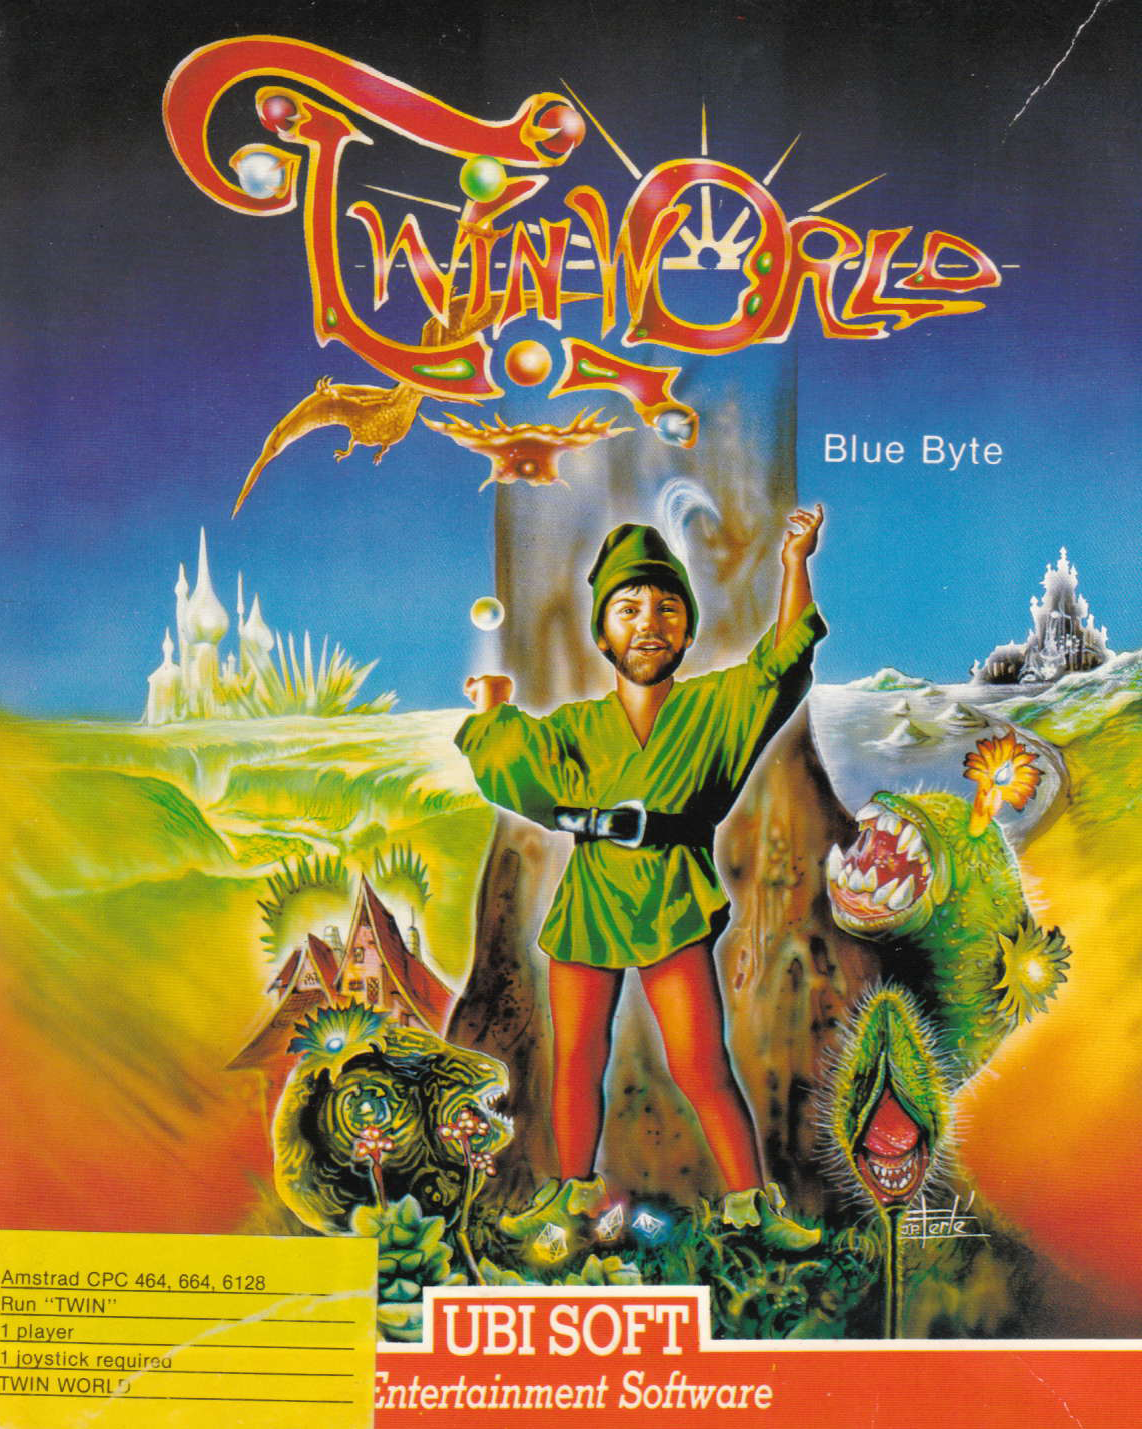 cover of the Amstrad CPC game Twinworld  by GameBase CPC